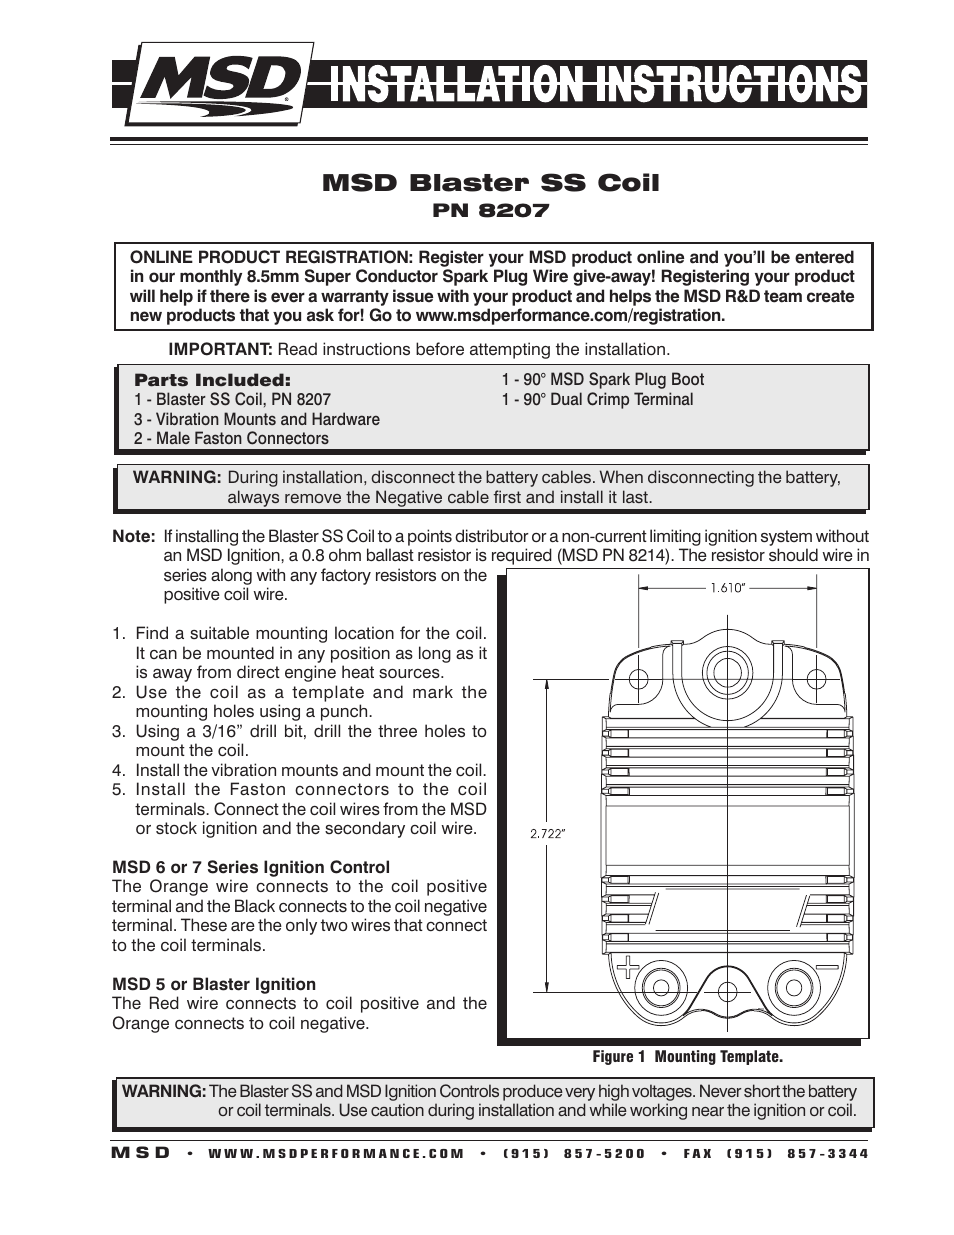 msd blaster 2 wiring diagram msi n1996 motherboard power 5 20 images diagrams schematic 6al 8207 ss coil installation page1 resize